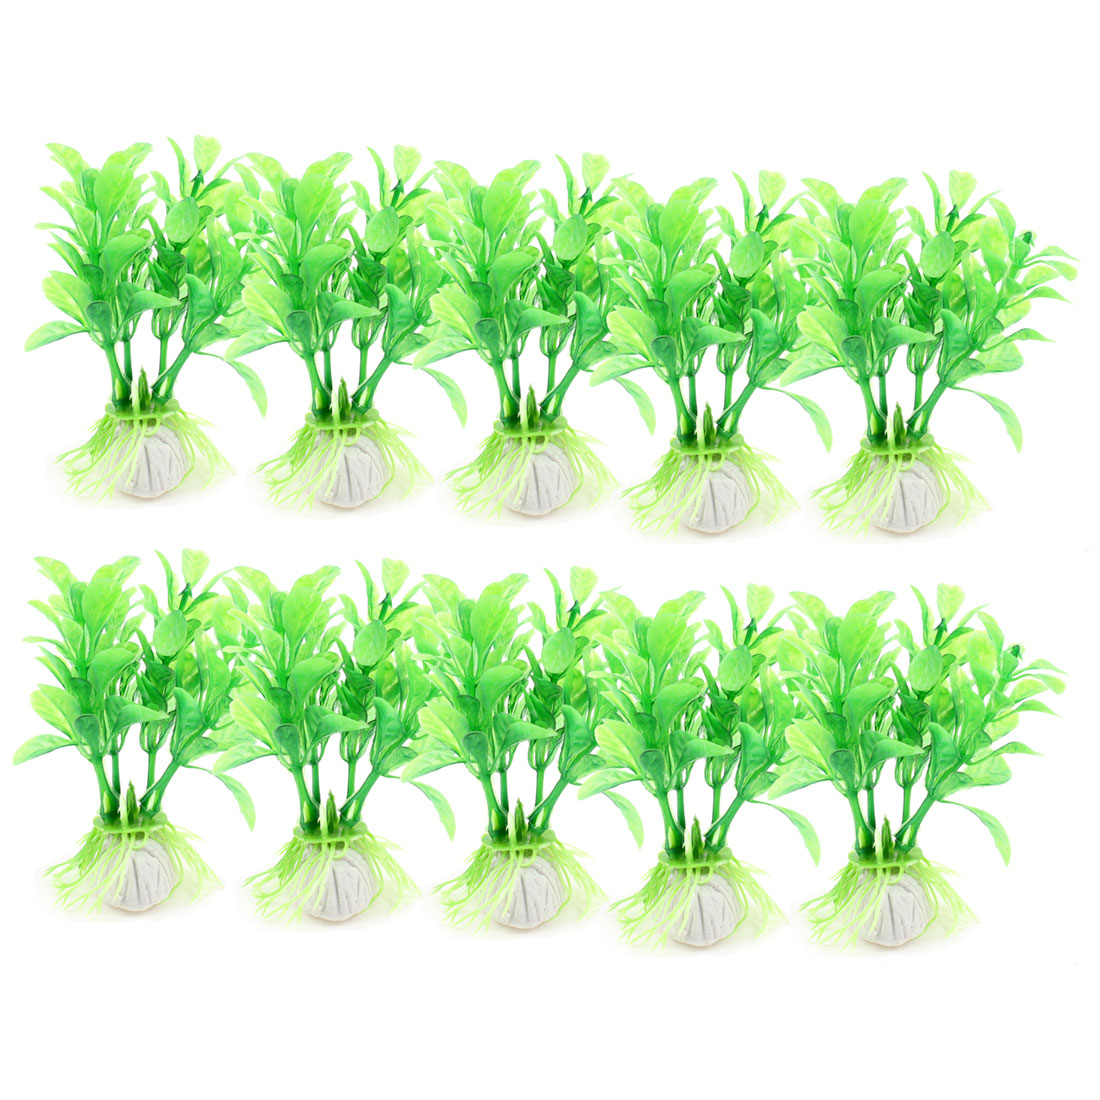 "10 Pcs 3.5"" Height Plastic Plants Grass Green Decoration for Fish Tank"